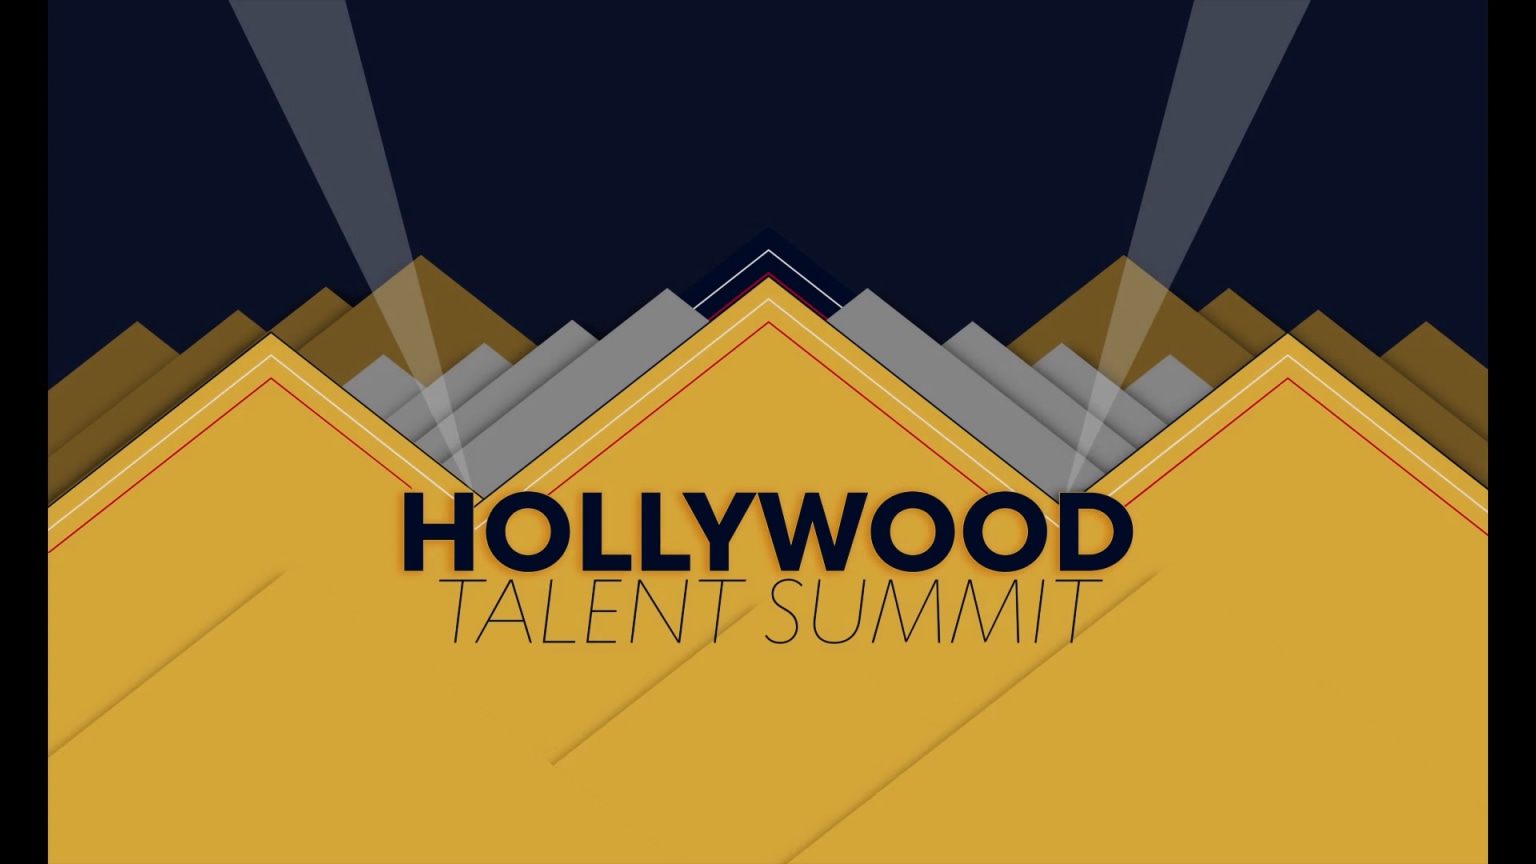 Hollywood Casting and Film Talent Summit Advertisement